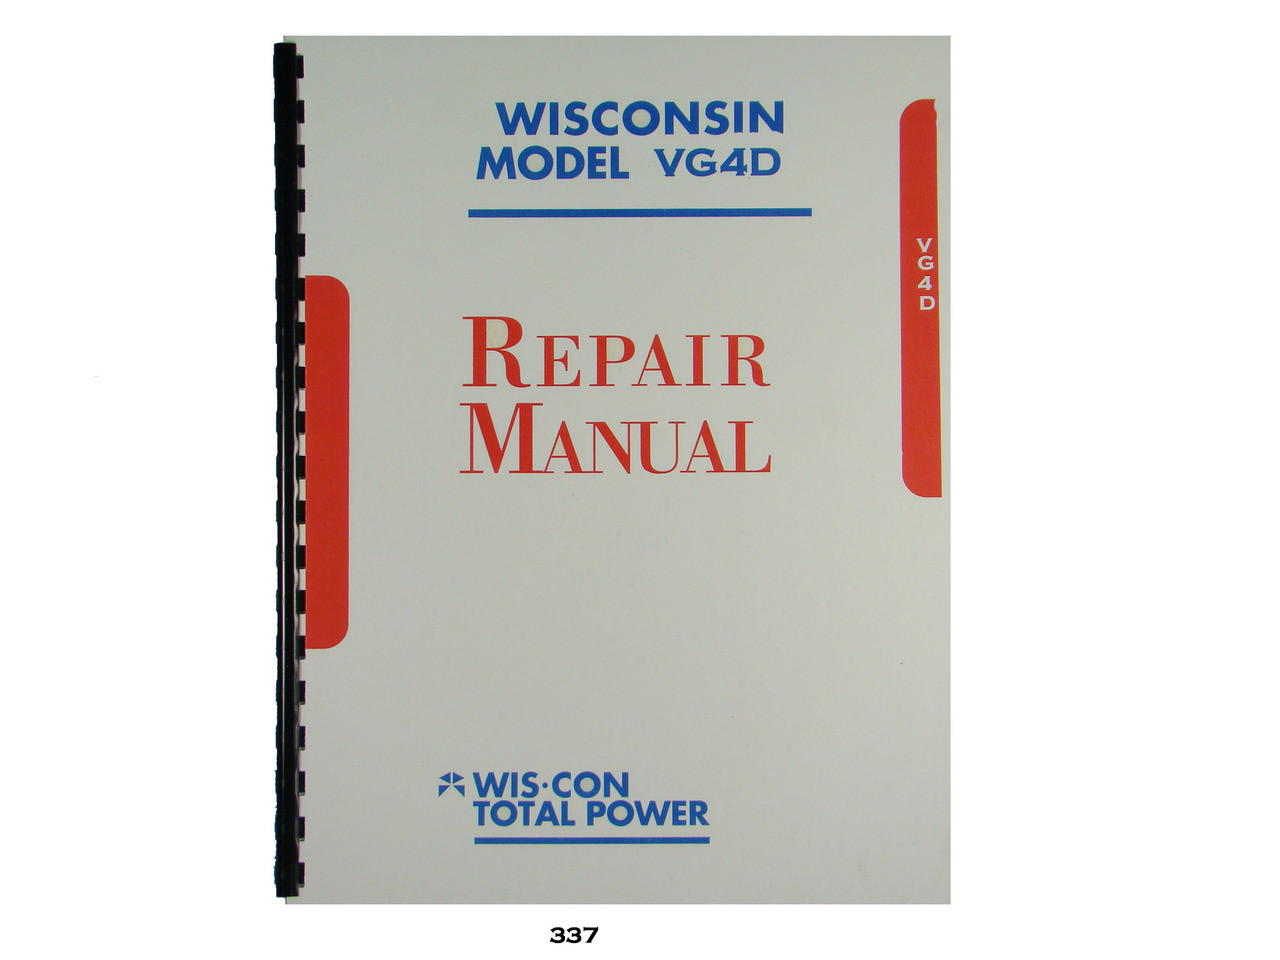 Free Wisconsin vg4d Service manual